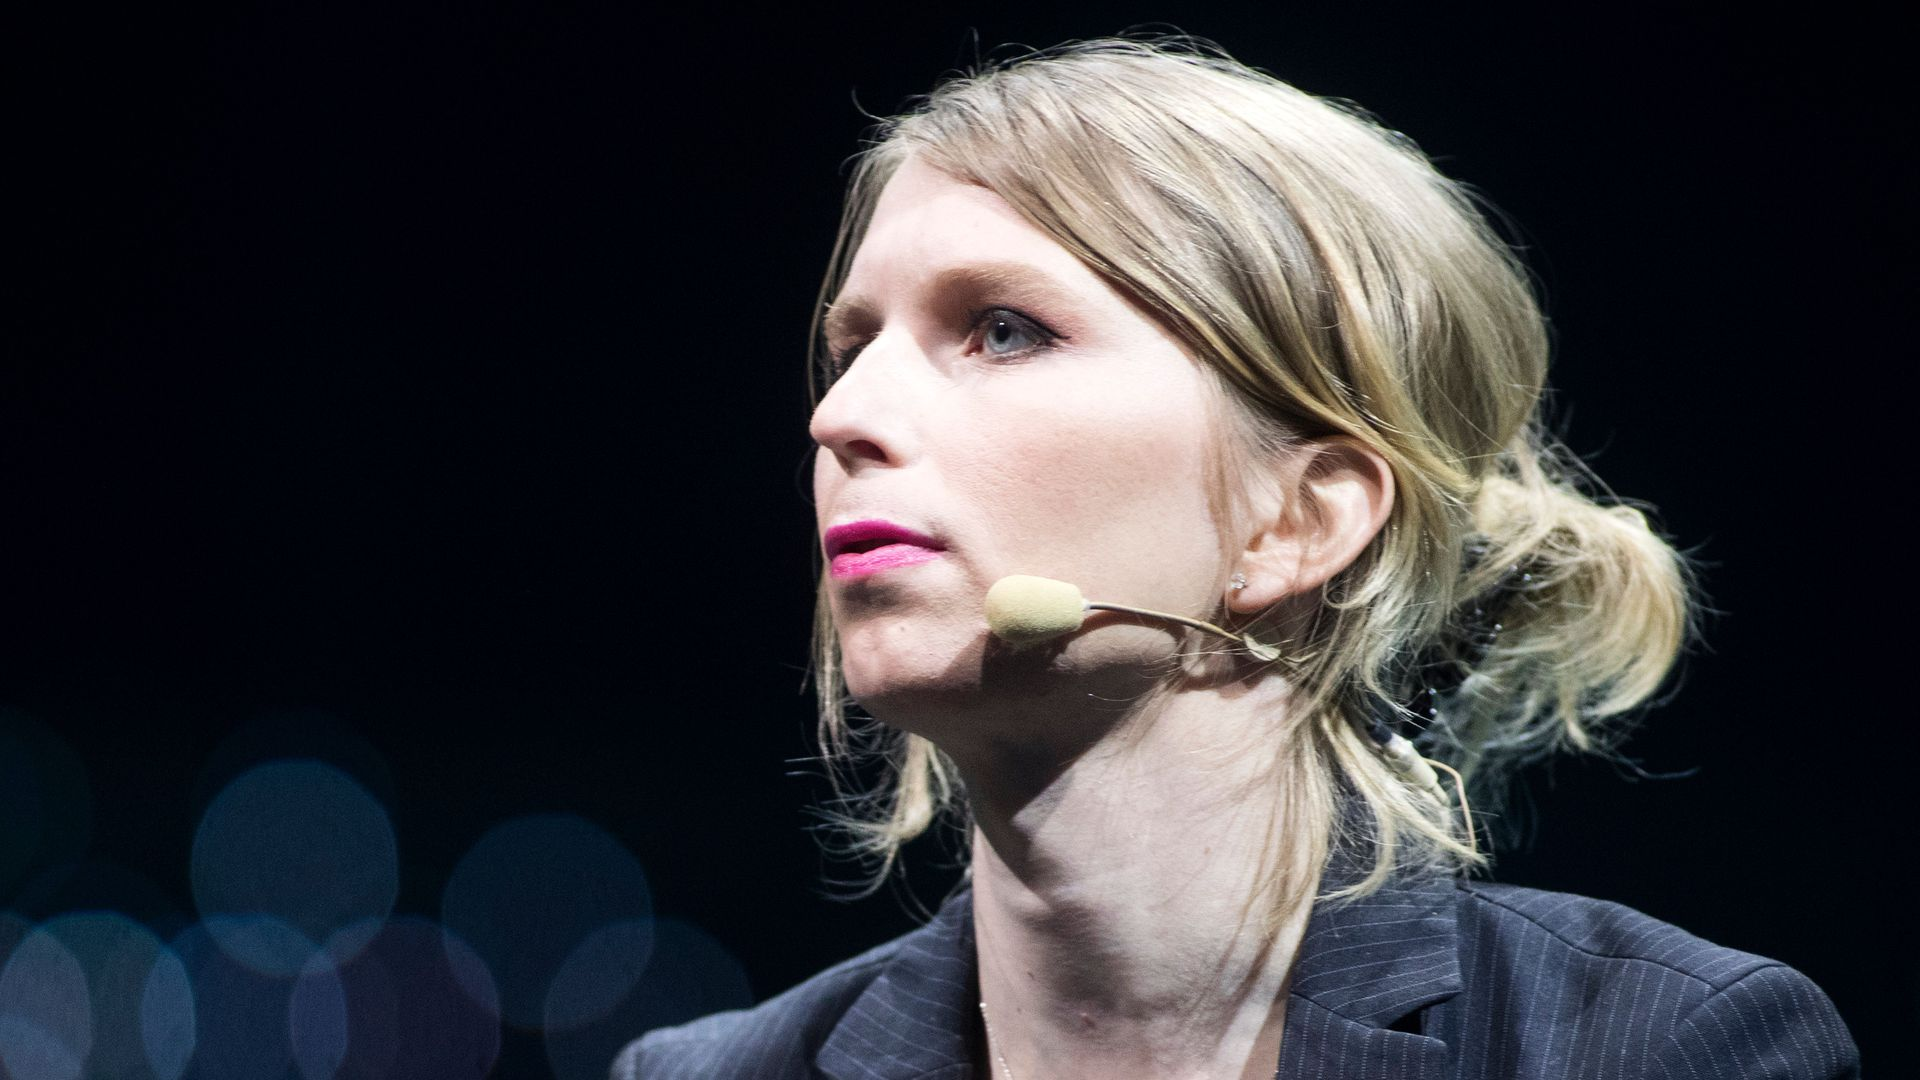 In this image, Chelsea Manning looks to the left while wearing a microphone.